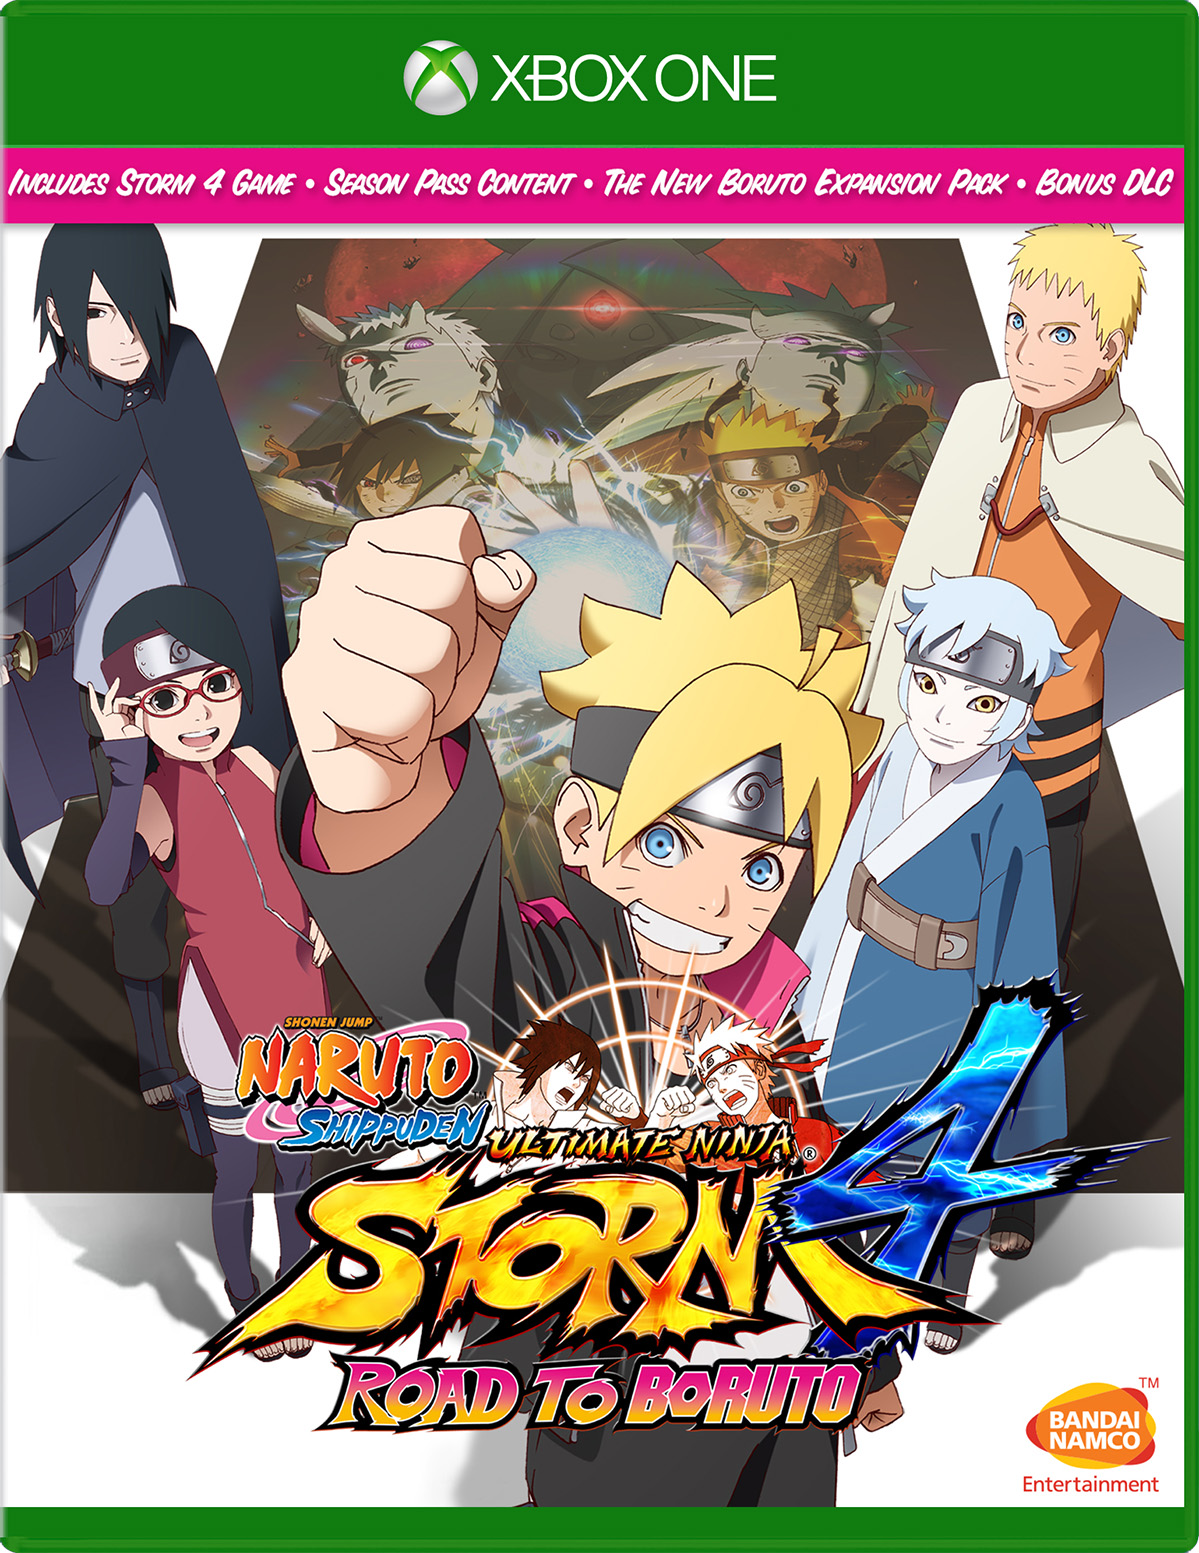 Namco Naruto Shippuden Ultimate Ninja Storm 4 : Road to Boruto German Xbox One